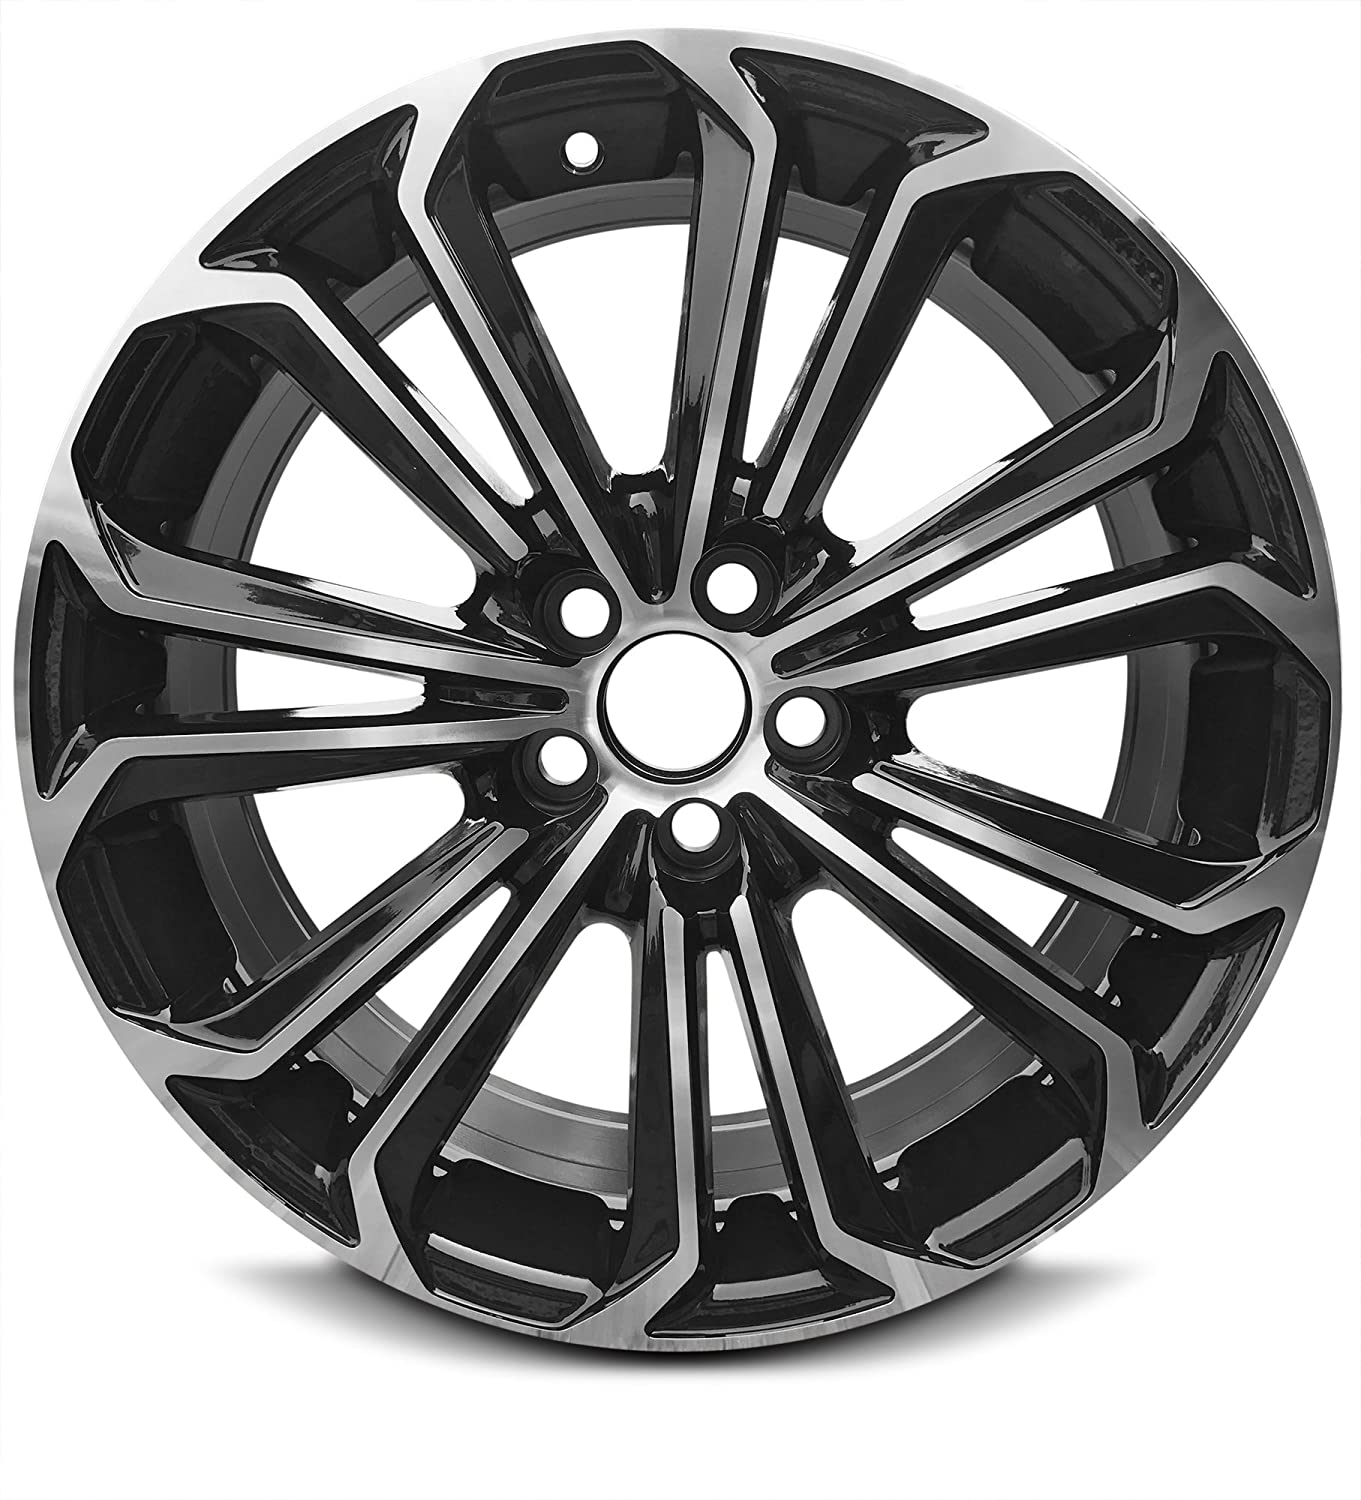 Amazon New 17 x 7 Inch 5 Lug 14 16 Toyota Corolla OEM Replica